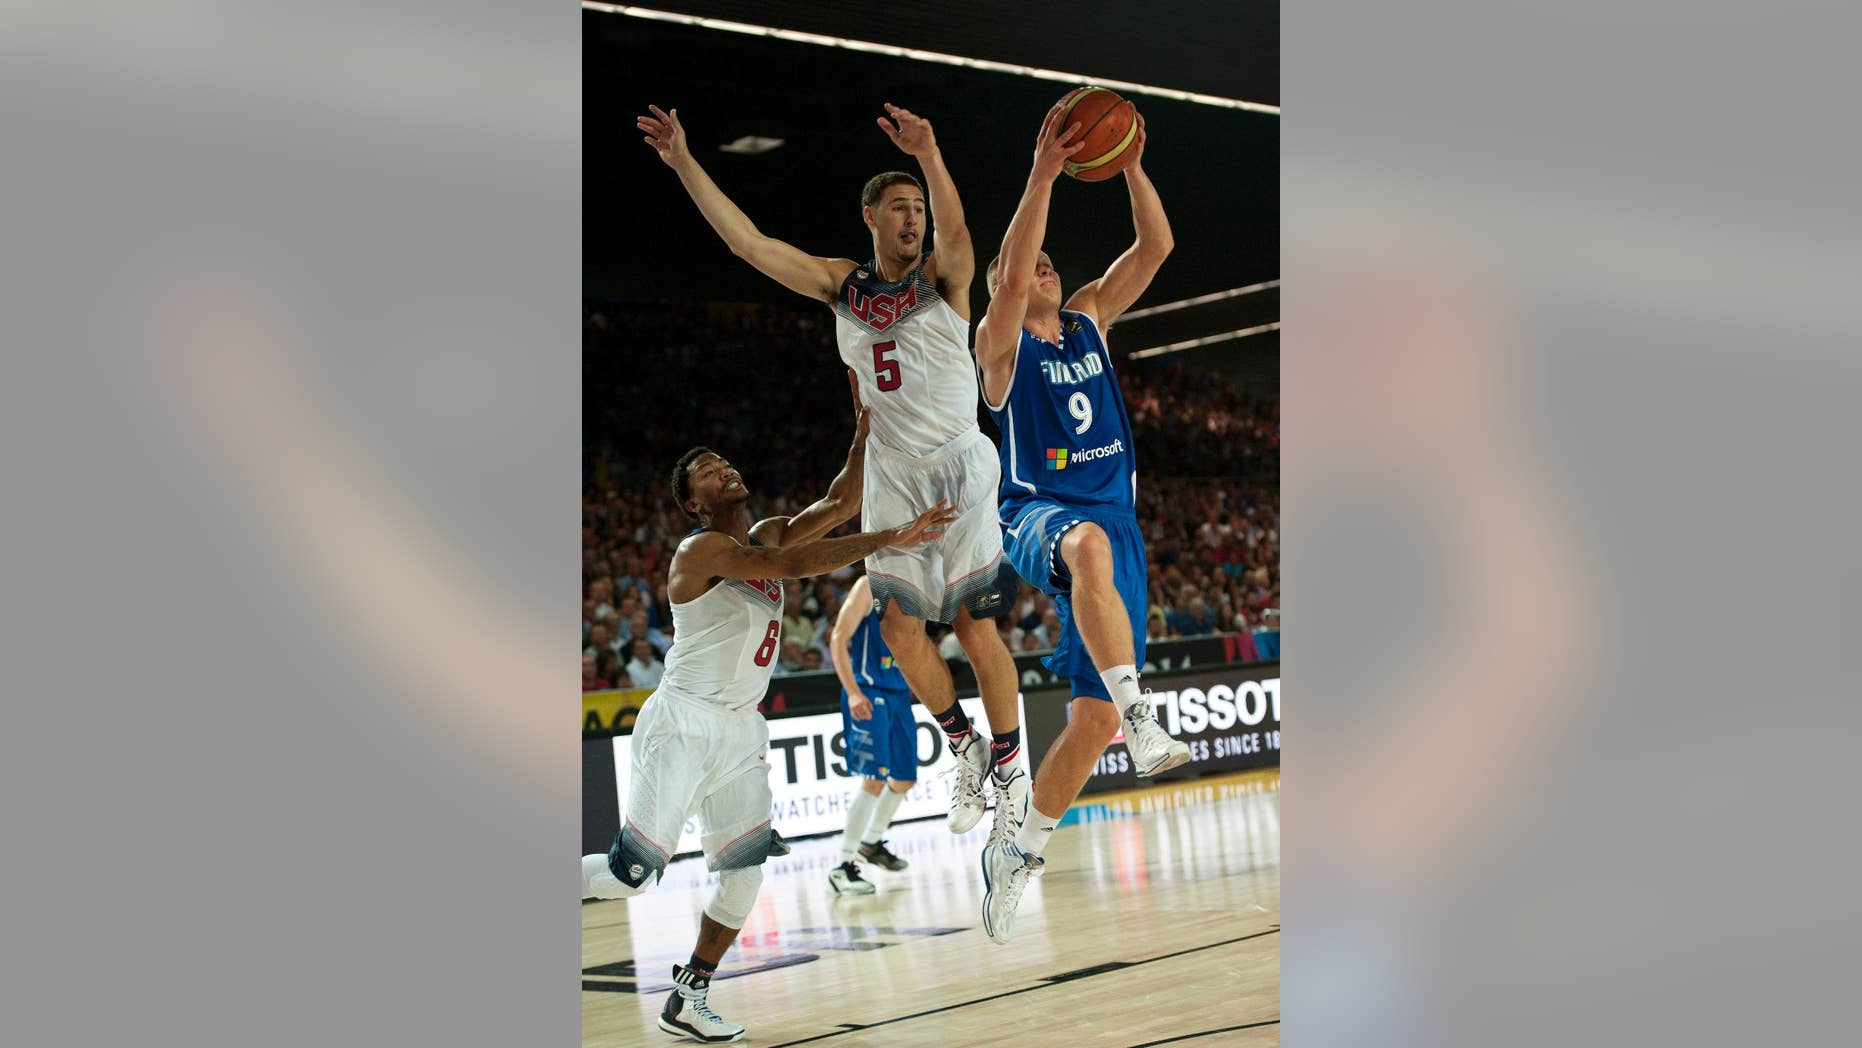 Finland's Sasu Salin,  tries to controls the ball between United States's Klay Thompson, and Derrick Rose, left, during the Group C Basketball World Cup match between United States and Finland,  in Bilbao northern Spain, Saturday, Aug. 30, 2014. The 2014 Basketball World Cup competition will take place in various cities in Spain from Aug. 30 through to Sept. 14. (AP Photo/Alvaro Barrientos)